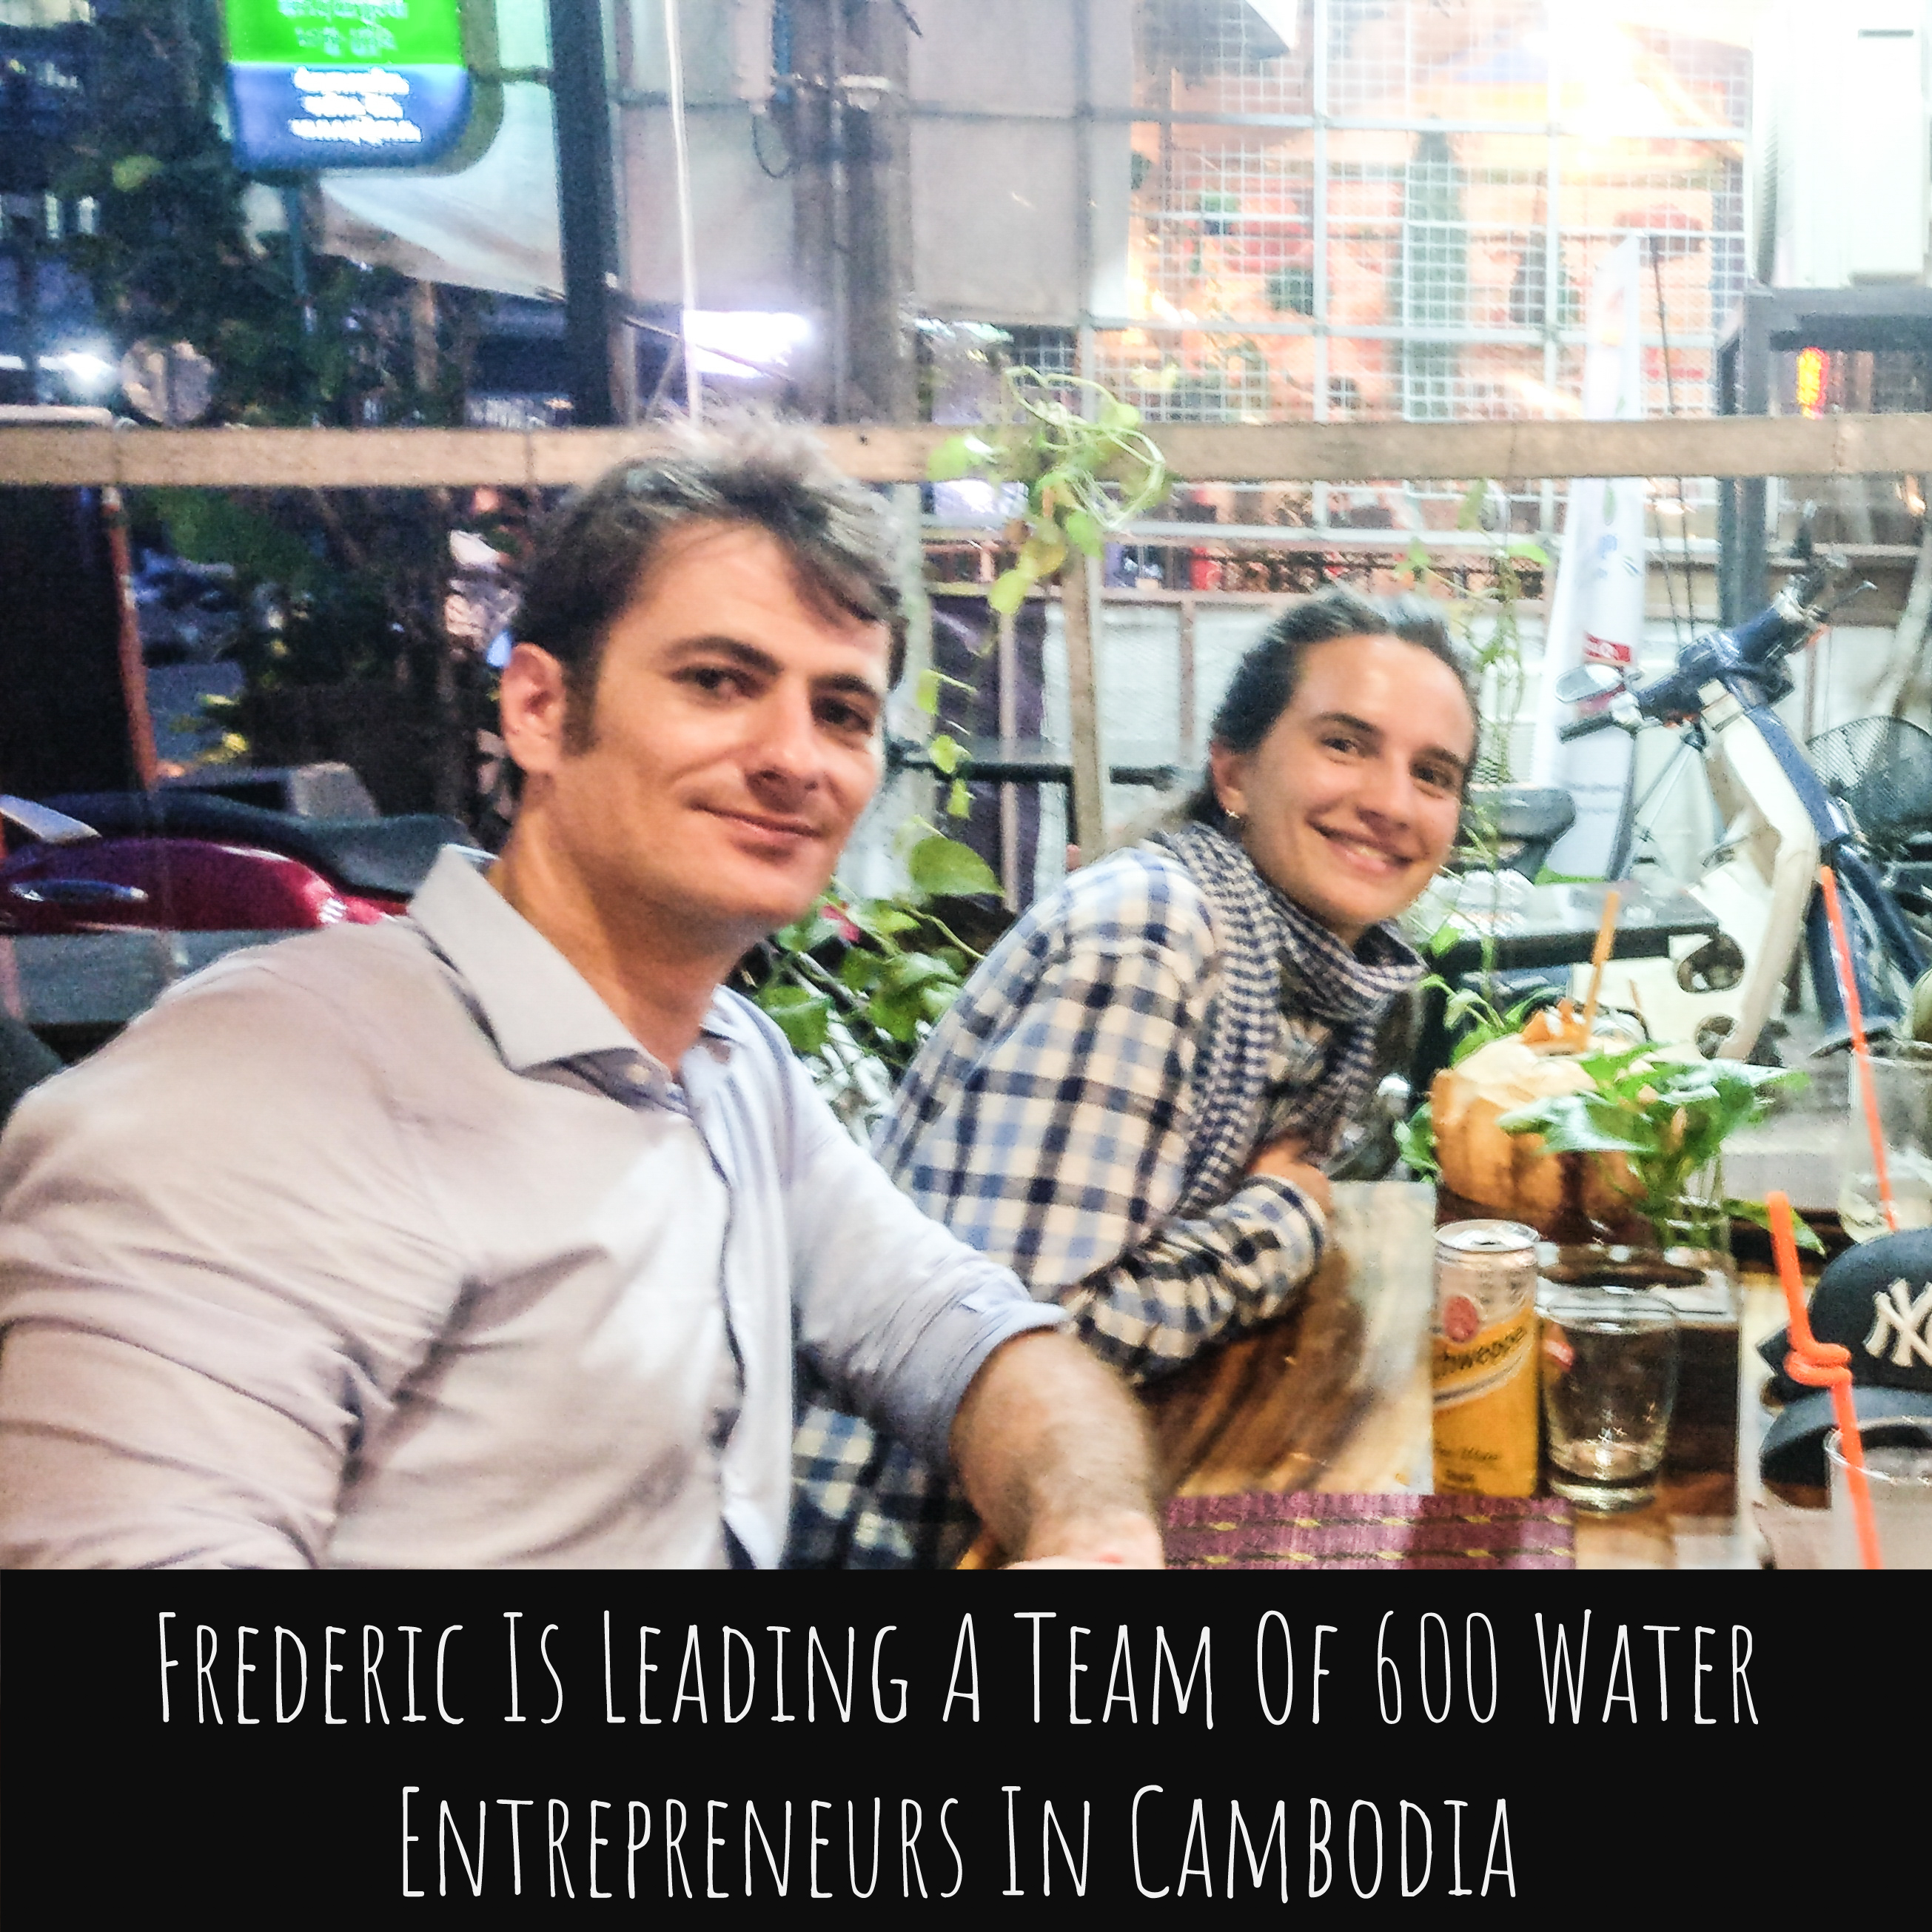 Frederic Is Leading A Team of 600 Water Entrepreneurs In Cambodia